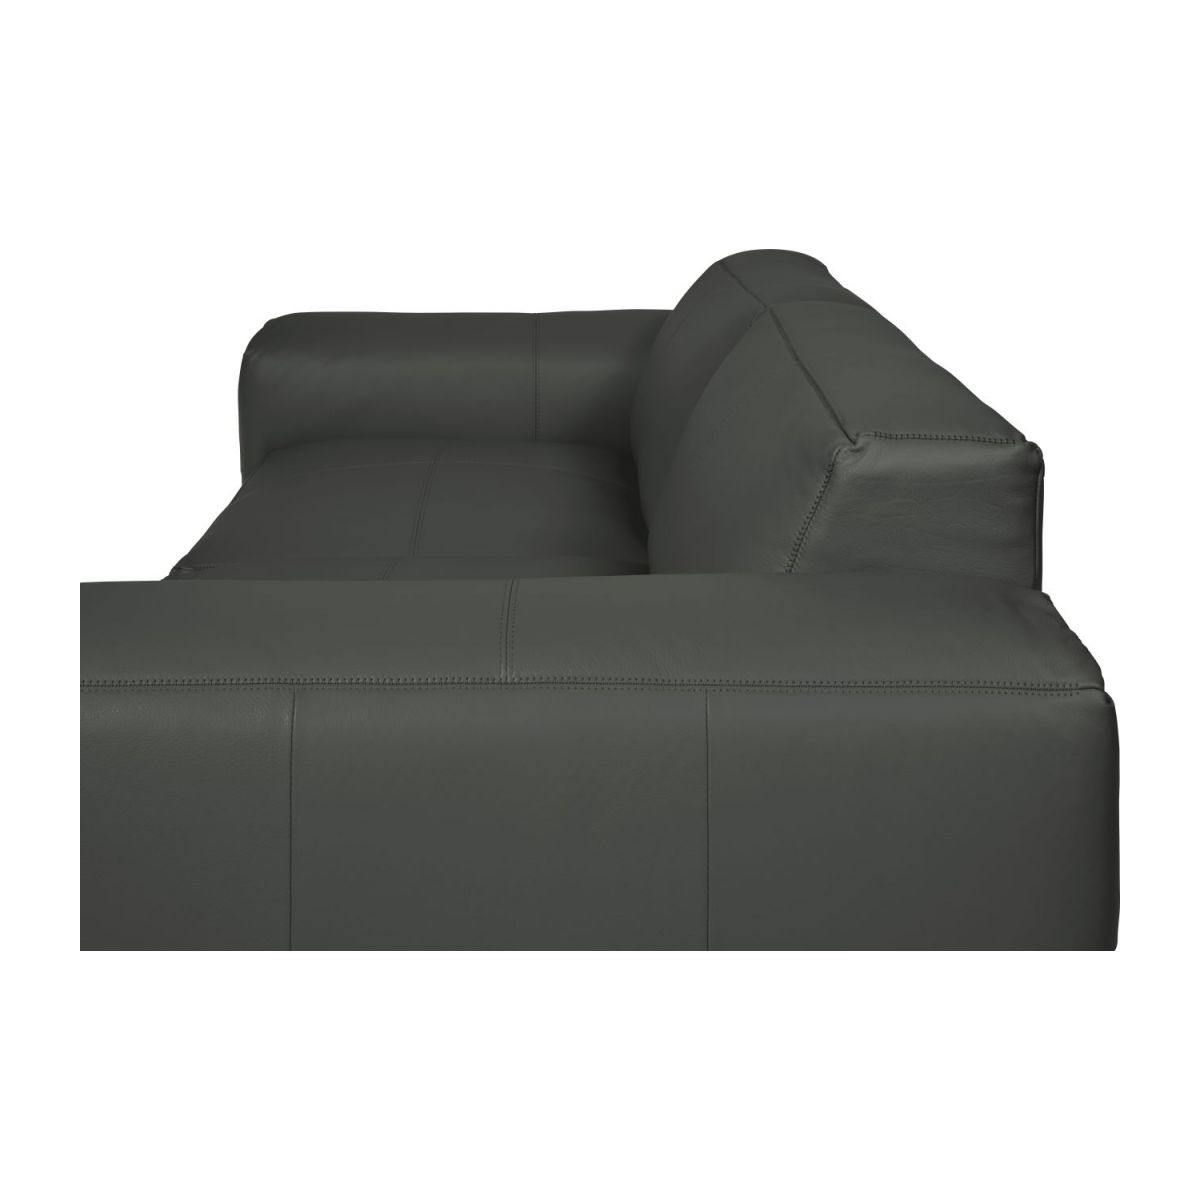 2 seater sofa in Savoy semi-aniline leather, grey n°11